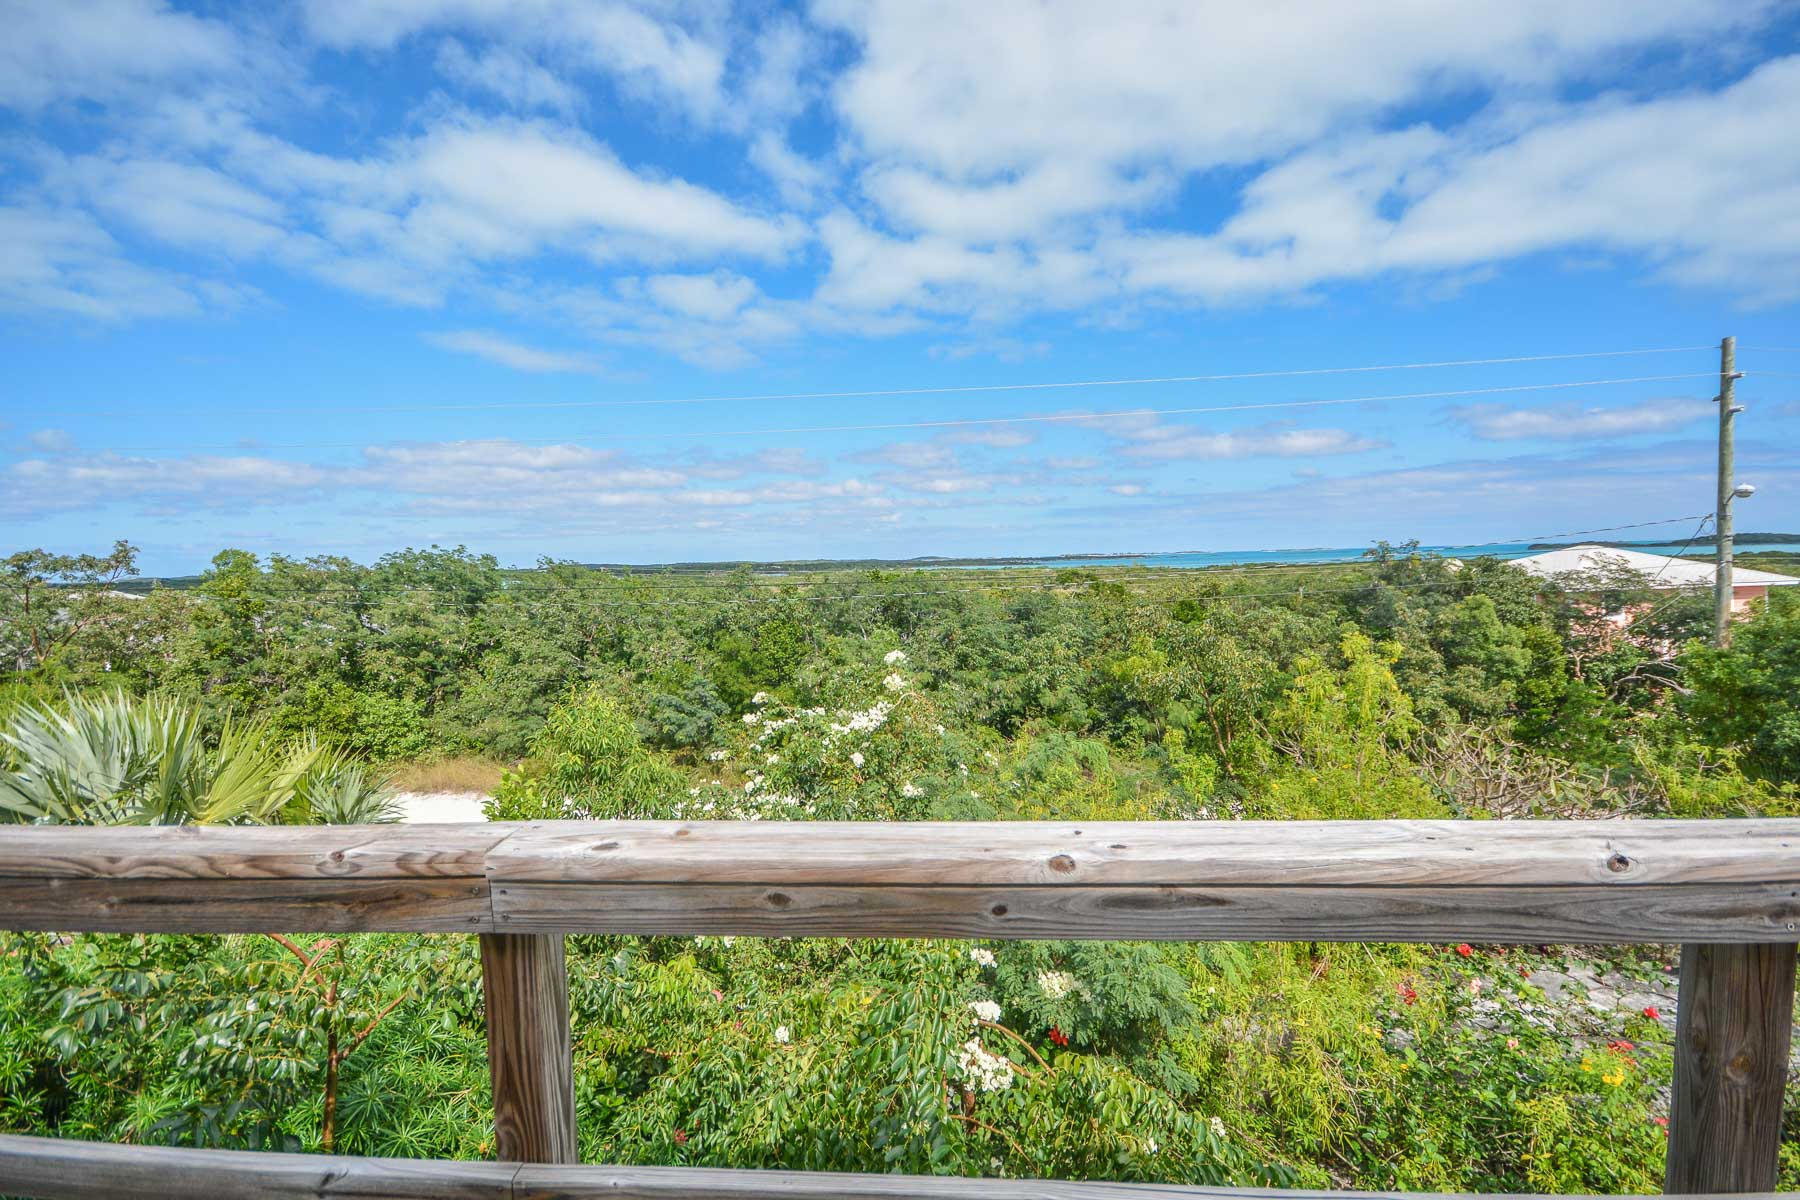 Single Family Home for Sale at Three Bedroom Home with Excellent Harbour Views - MLS 32102 Bahama Sound, Exuma, Bahamas